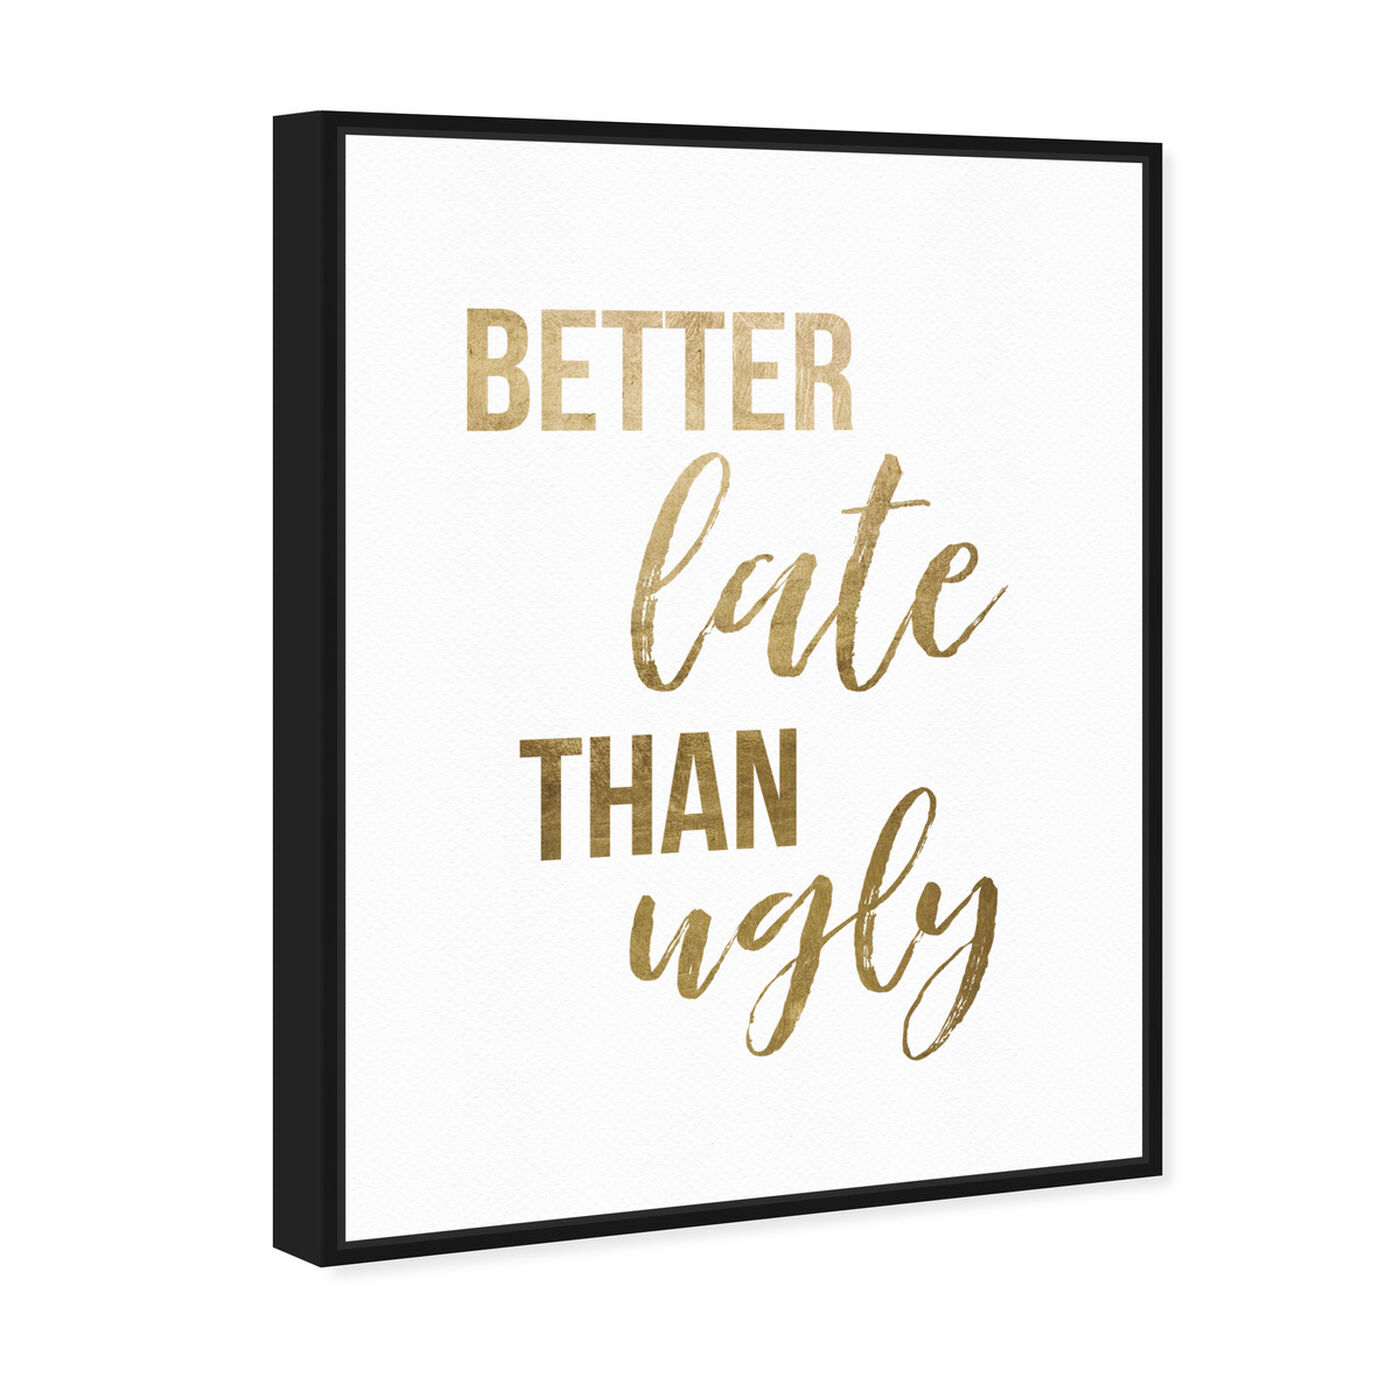 Angled view of Better Late than Ugly featuring typography and quotes and fashion quotes and sayings art.